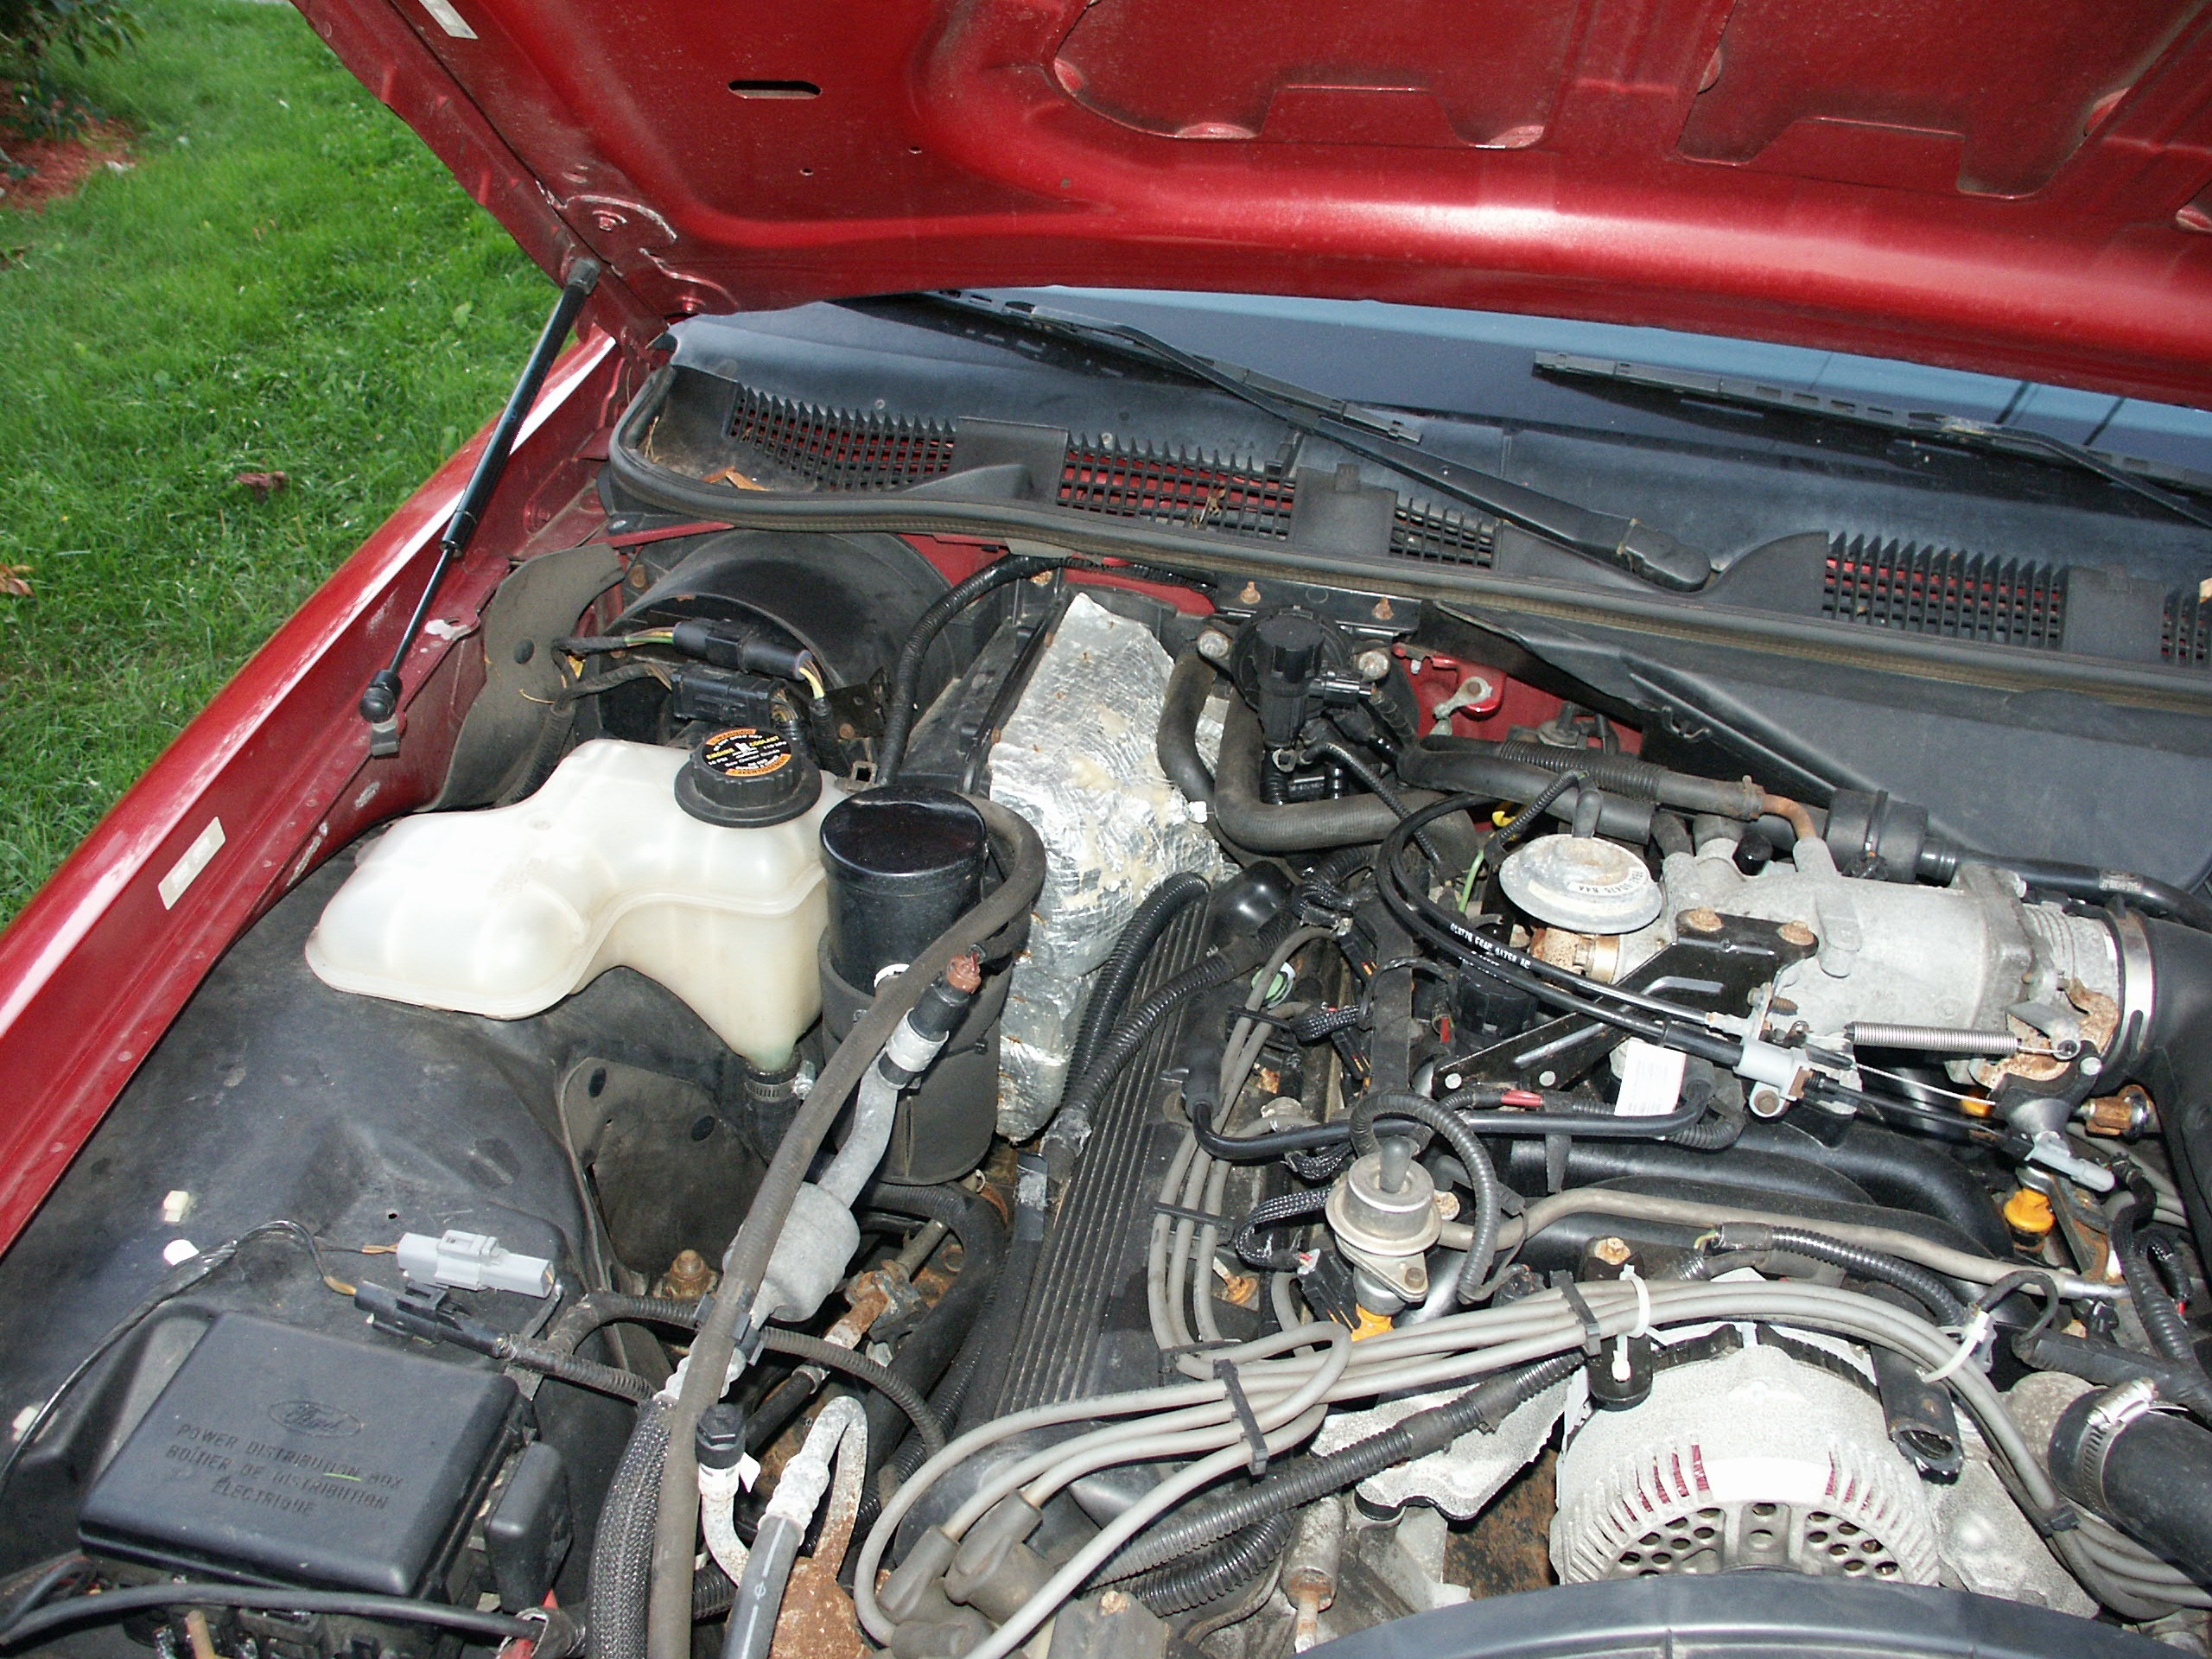 Ford Blower Motor Resistor Pigtail Replacement Ac Plug Wiring Mazda Parts And A Few More Pictures From Various Angles Around 1997 Police Cruiser Engine Bay